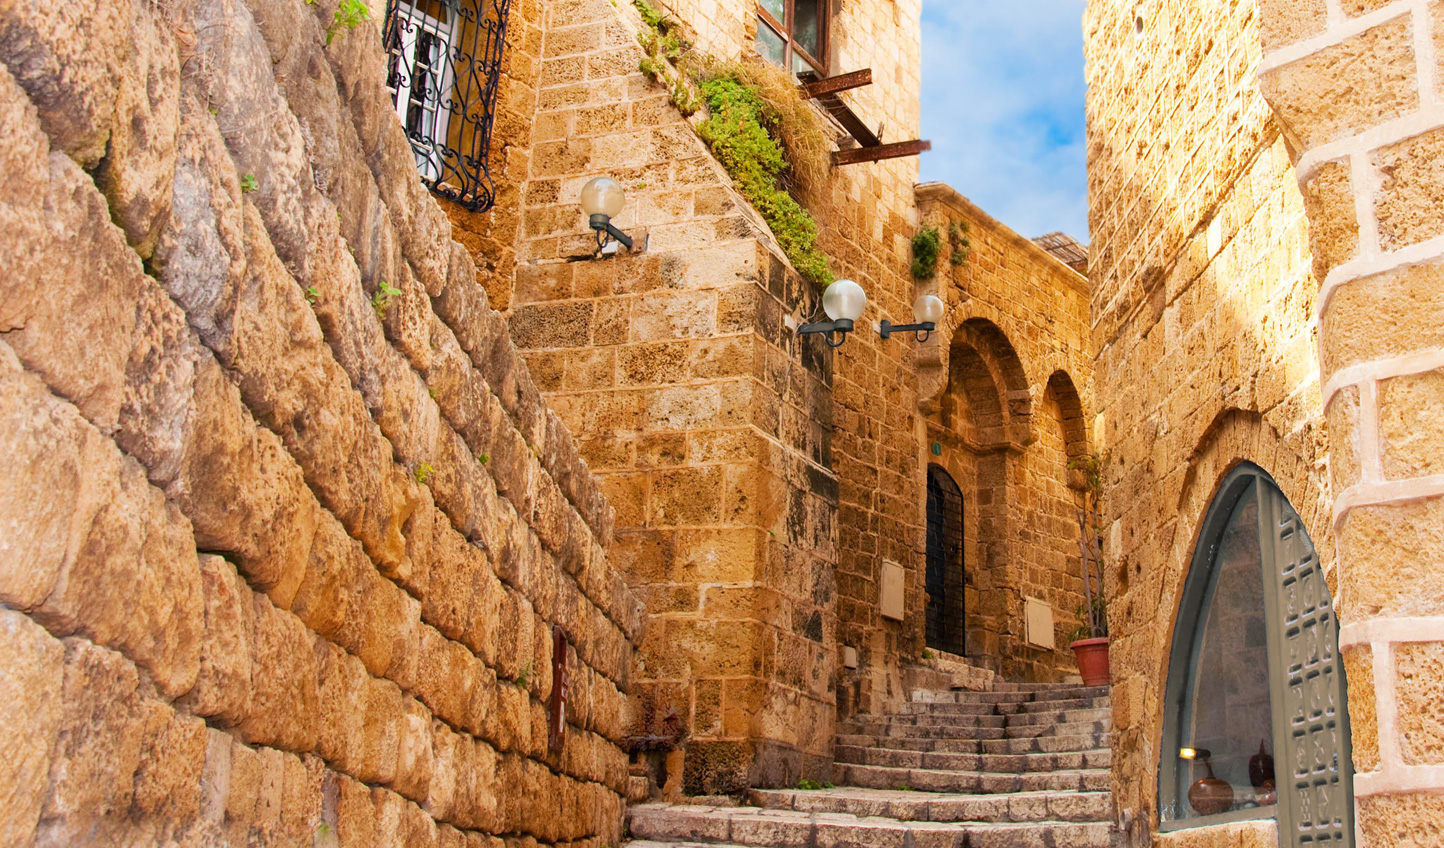 Discover the ancient port town of Jaffa